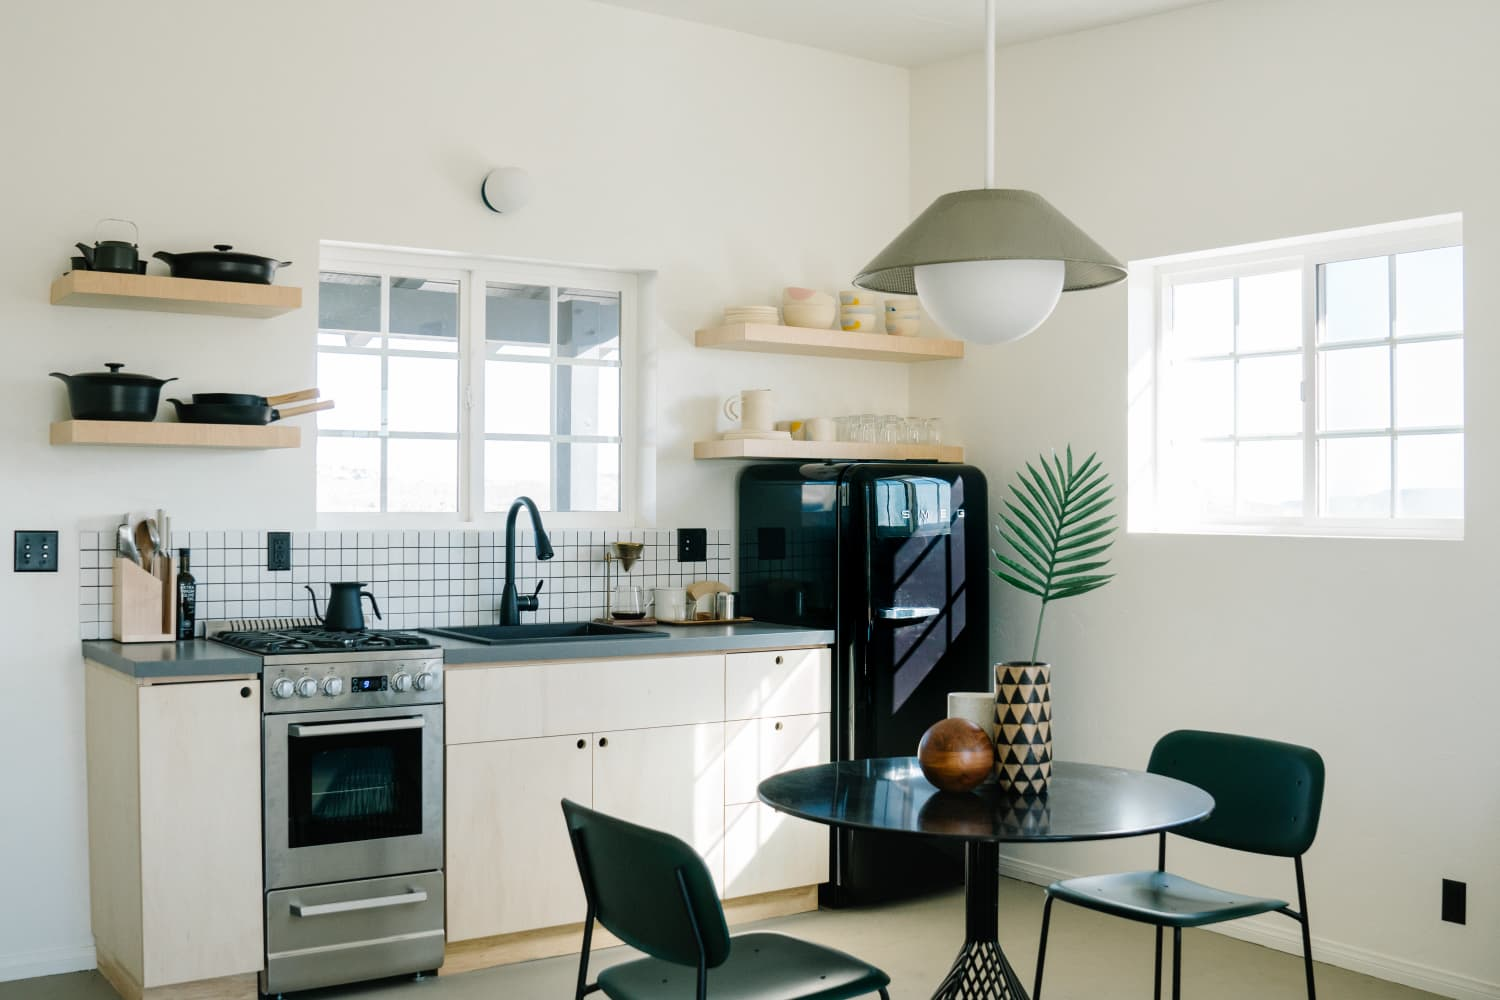 This $1 Trick Will Make the Utilitarian Spots in Your Home Look More Expensive